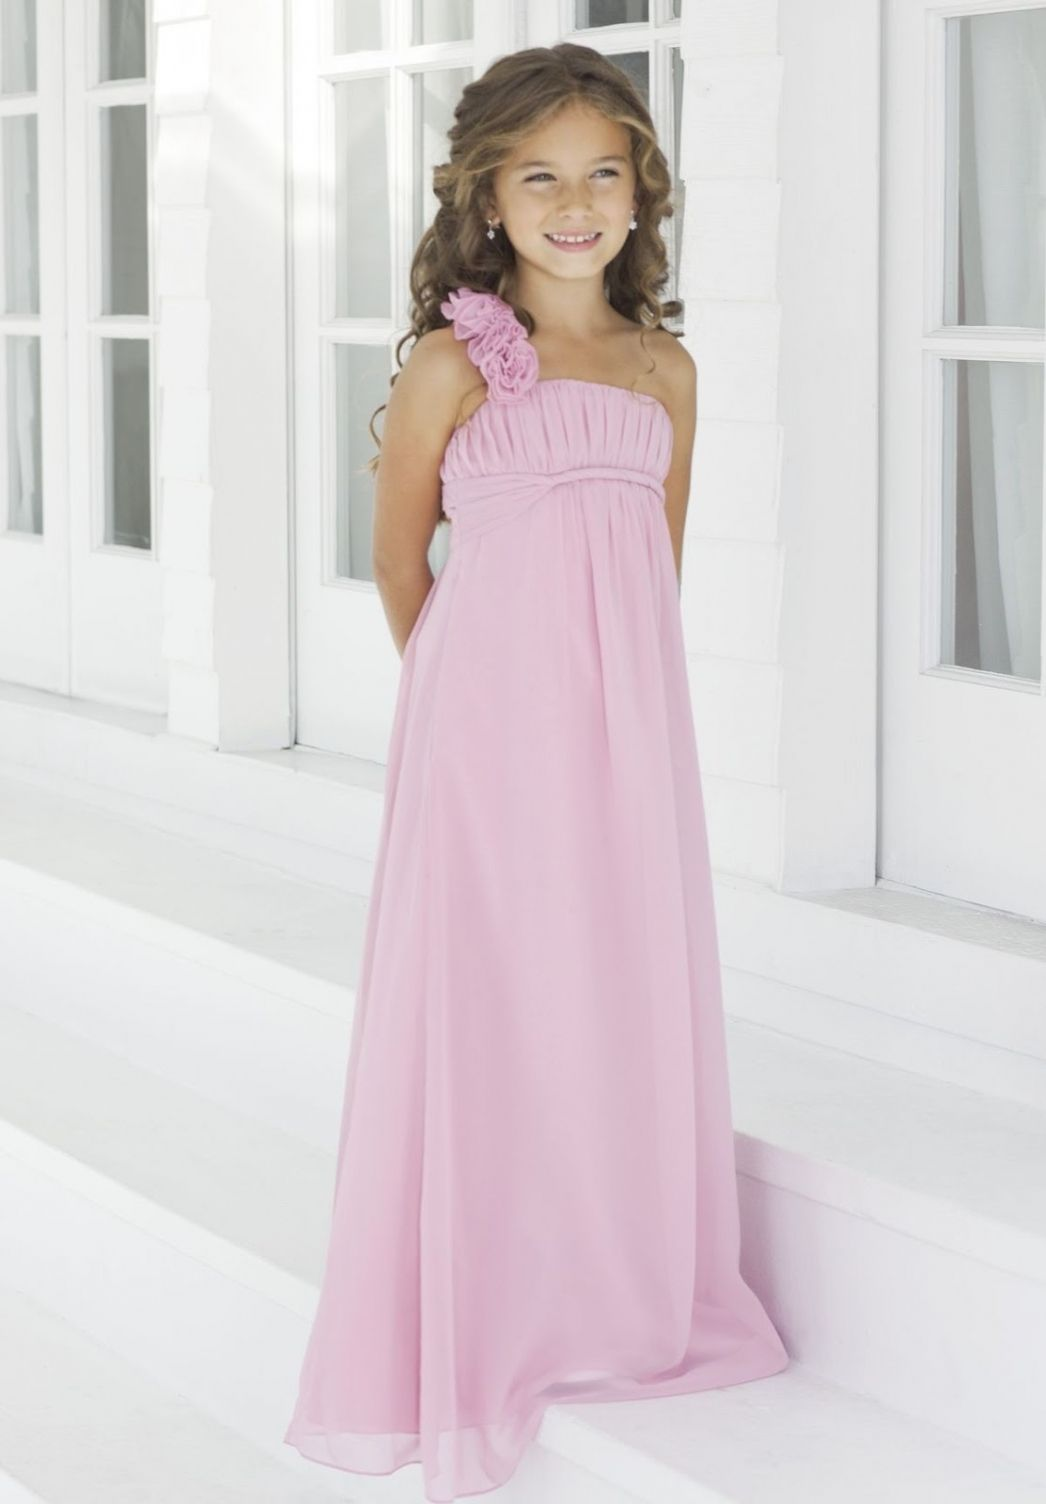 Best Of Junior Dresses For Wedding Check More At Http://svesty.com/junior  Dresses For Wedding/